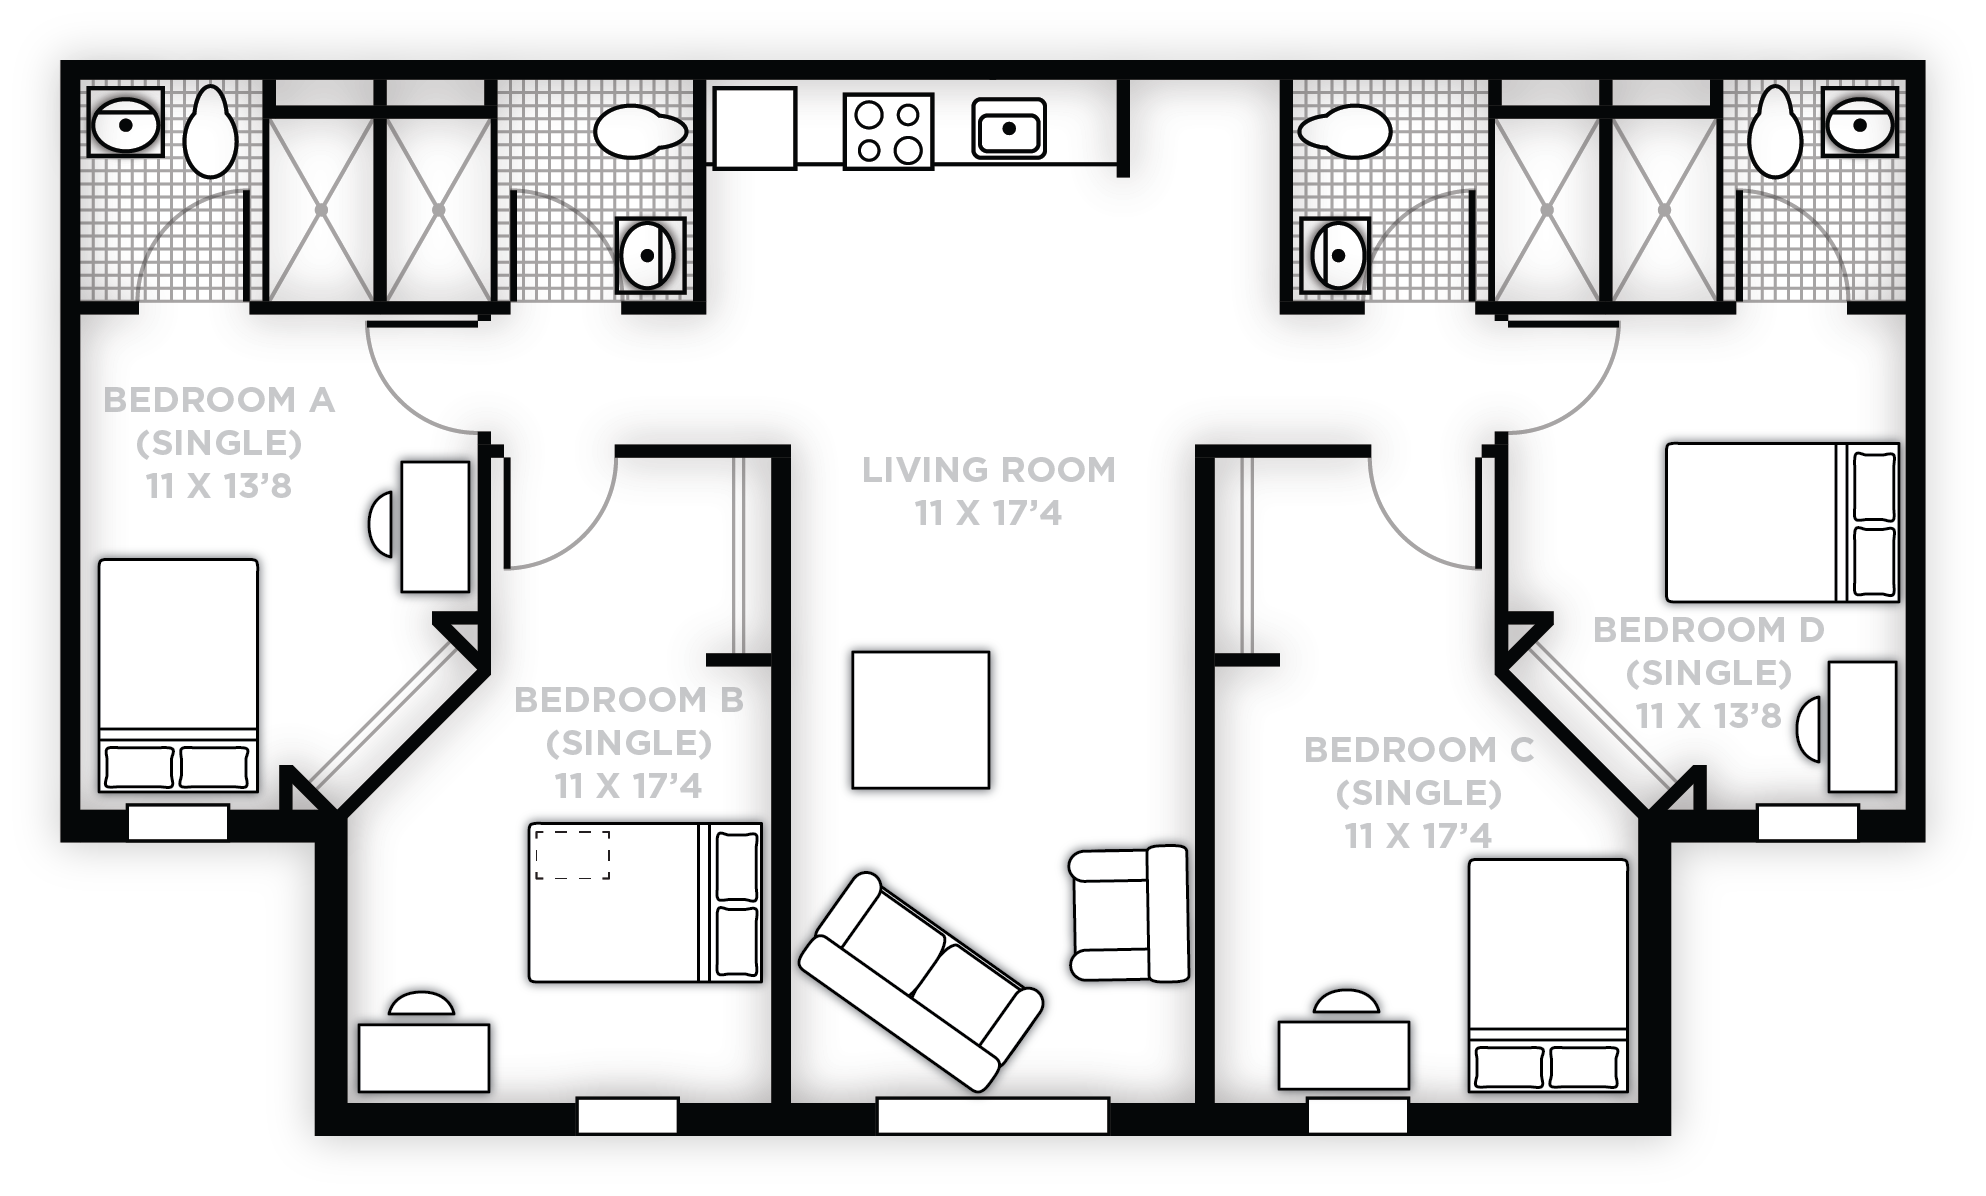 4 Bed/4 Bath - Handicap accessible rooms are available in this apartment layout.